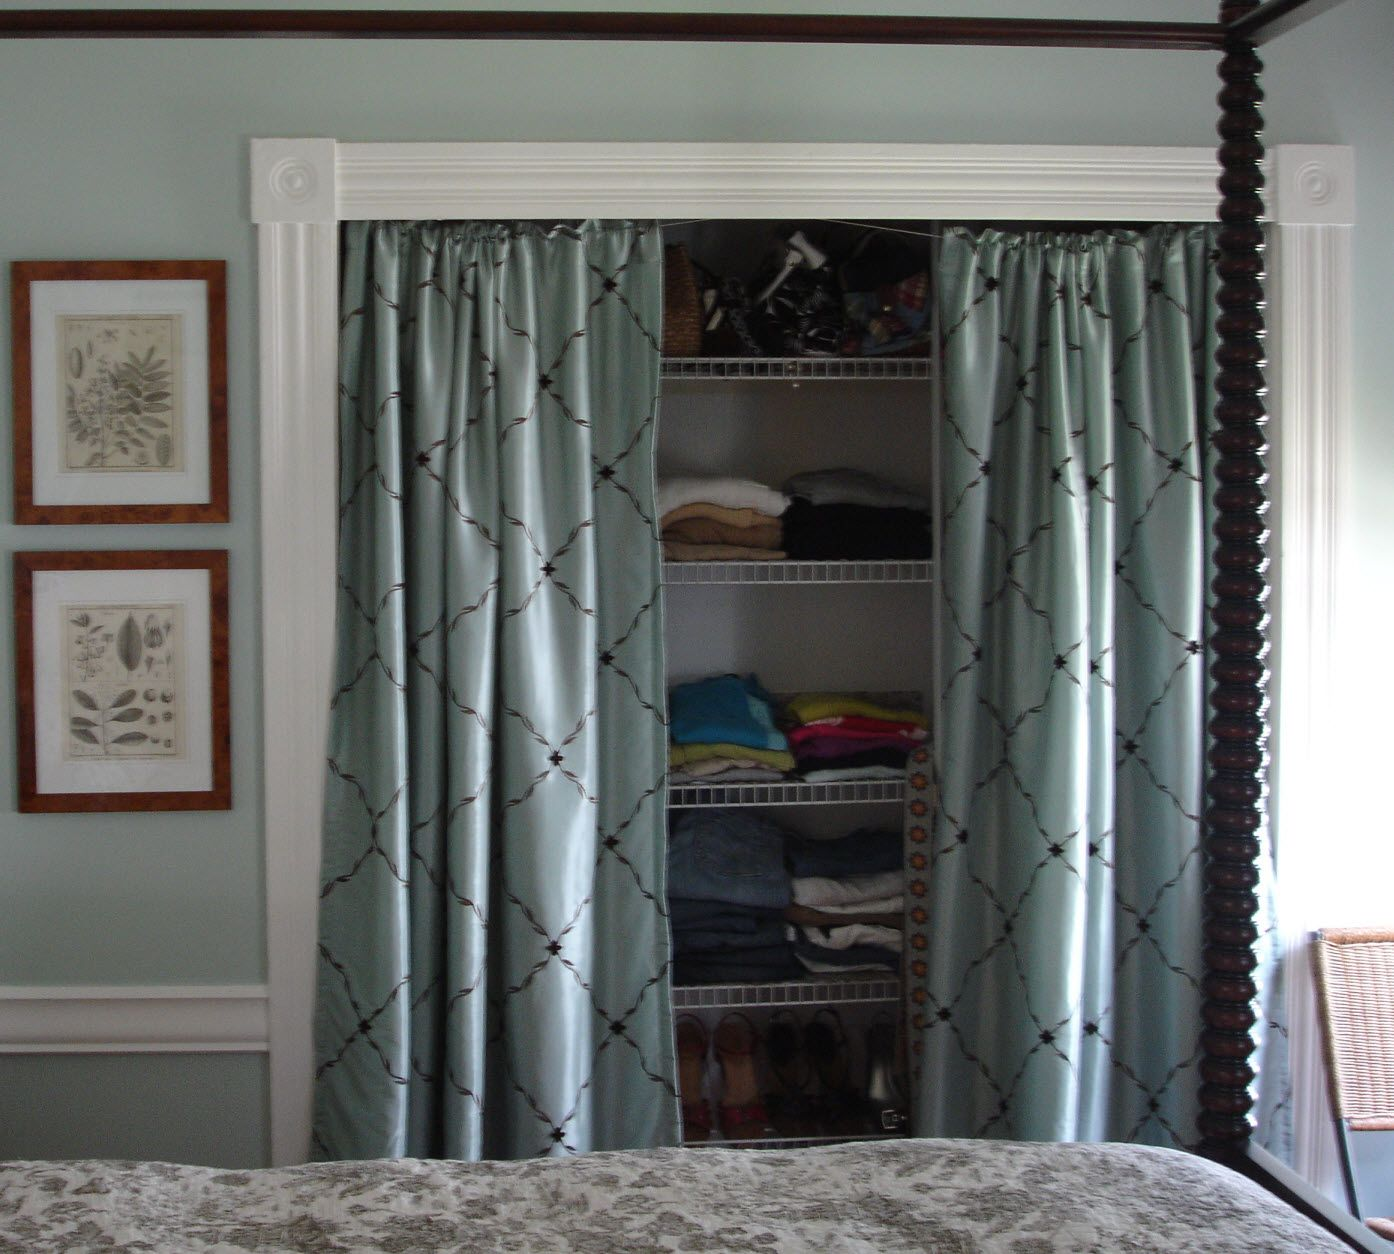 Bedroom curtain track - Bedroom Door Curtains 17 Best Images About Closet Curtains On Pinterest Curtain Rods Cottage Curtains